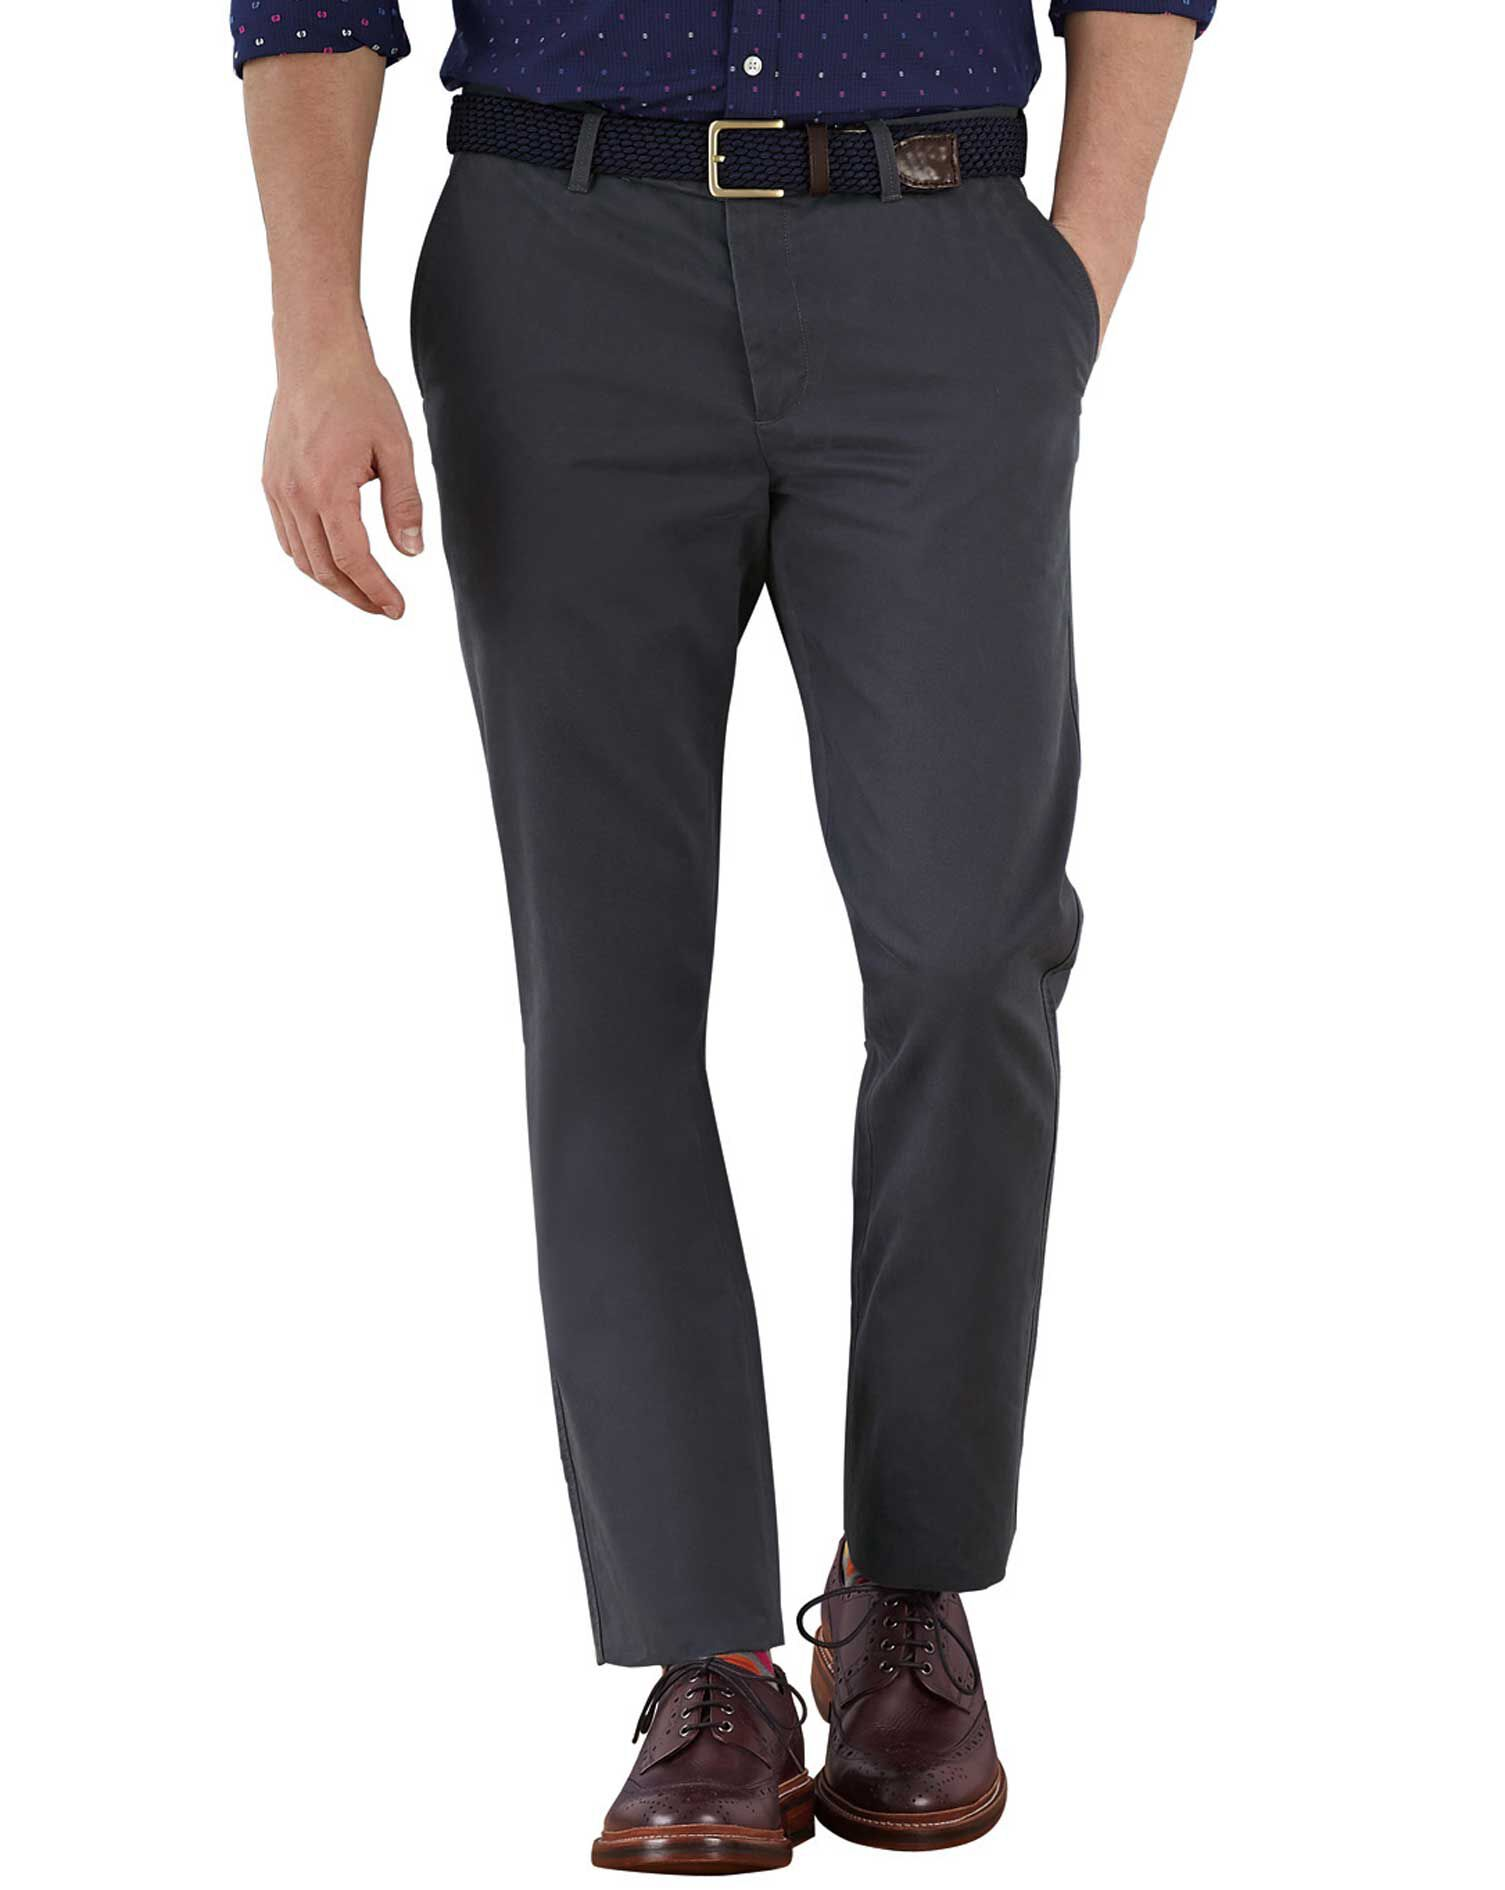 Charcoal Extra Slim Fit Flat Front Cotton Chino Trousers Size W36 L30 by Charles Tyrwhitt